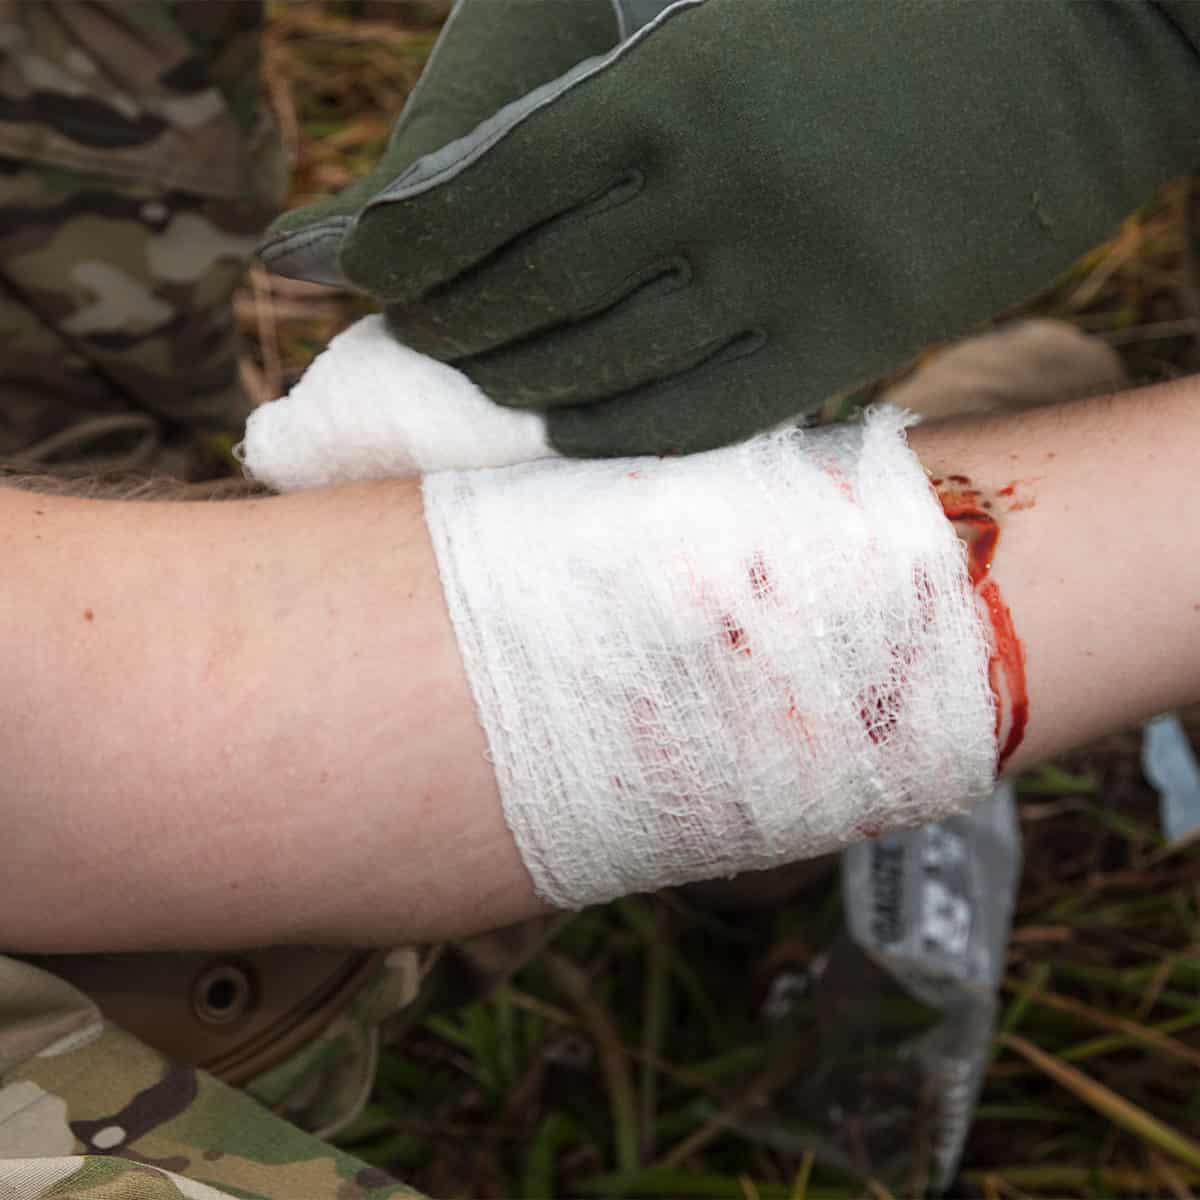 combat medical rolled gauze applied